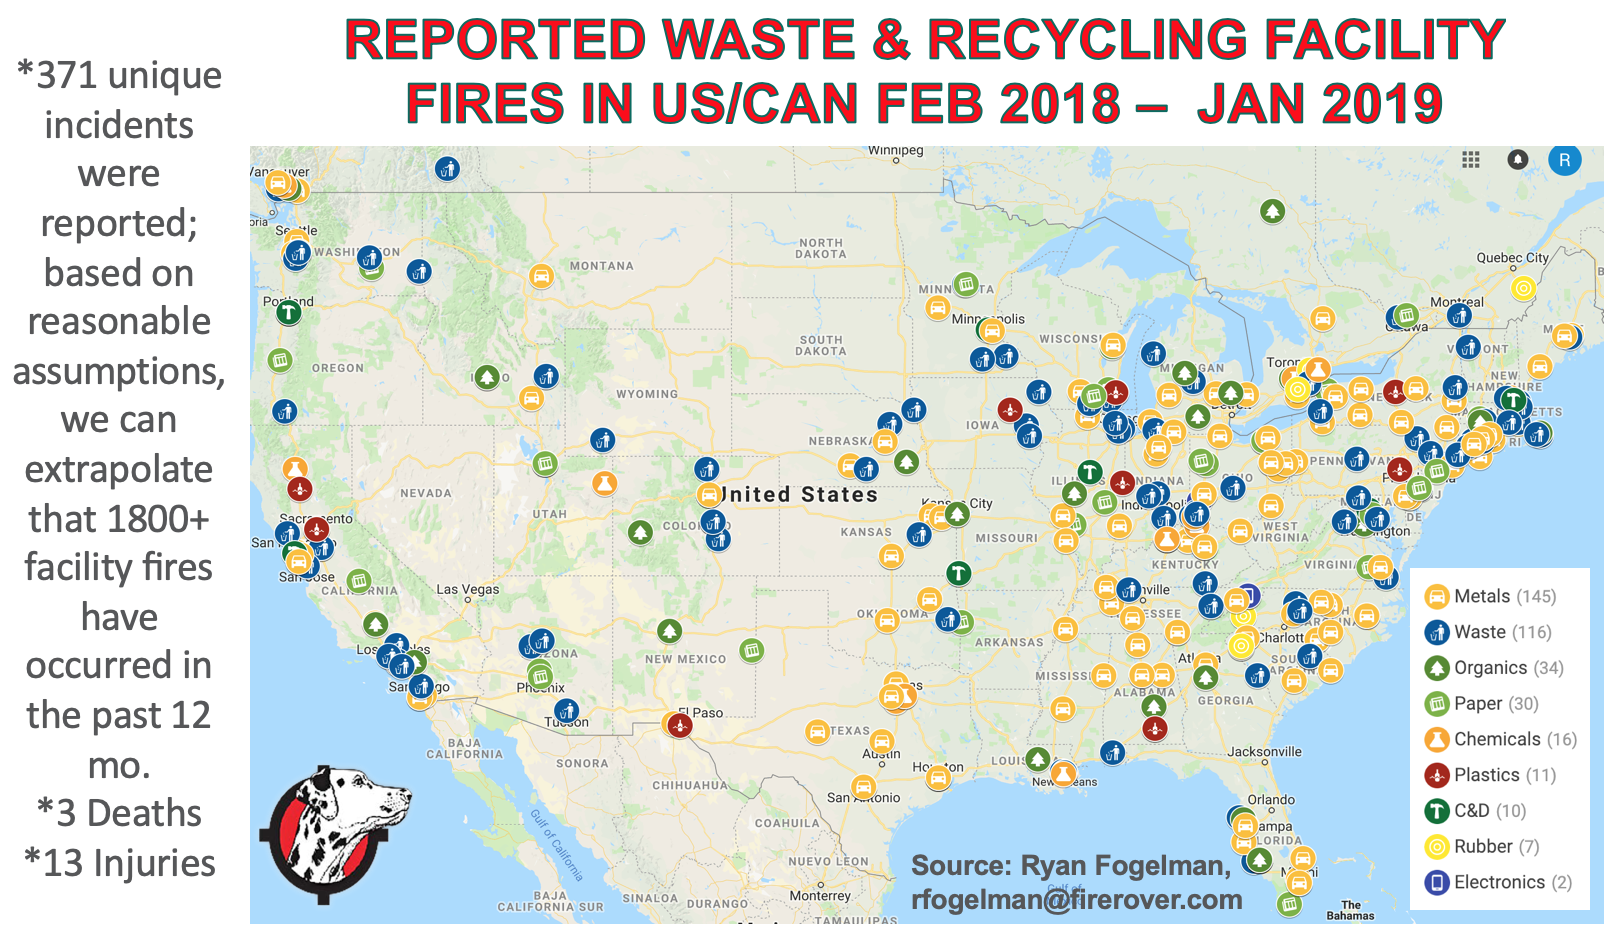 Feb-2018-Jan-2019-Waste-Recycling-Facility-Fires-By-Material.png